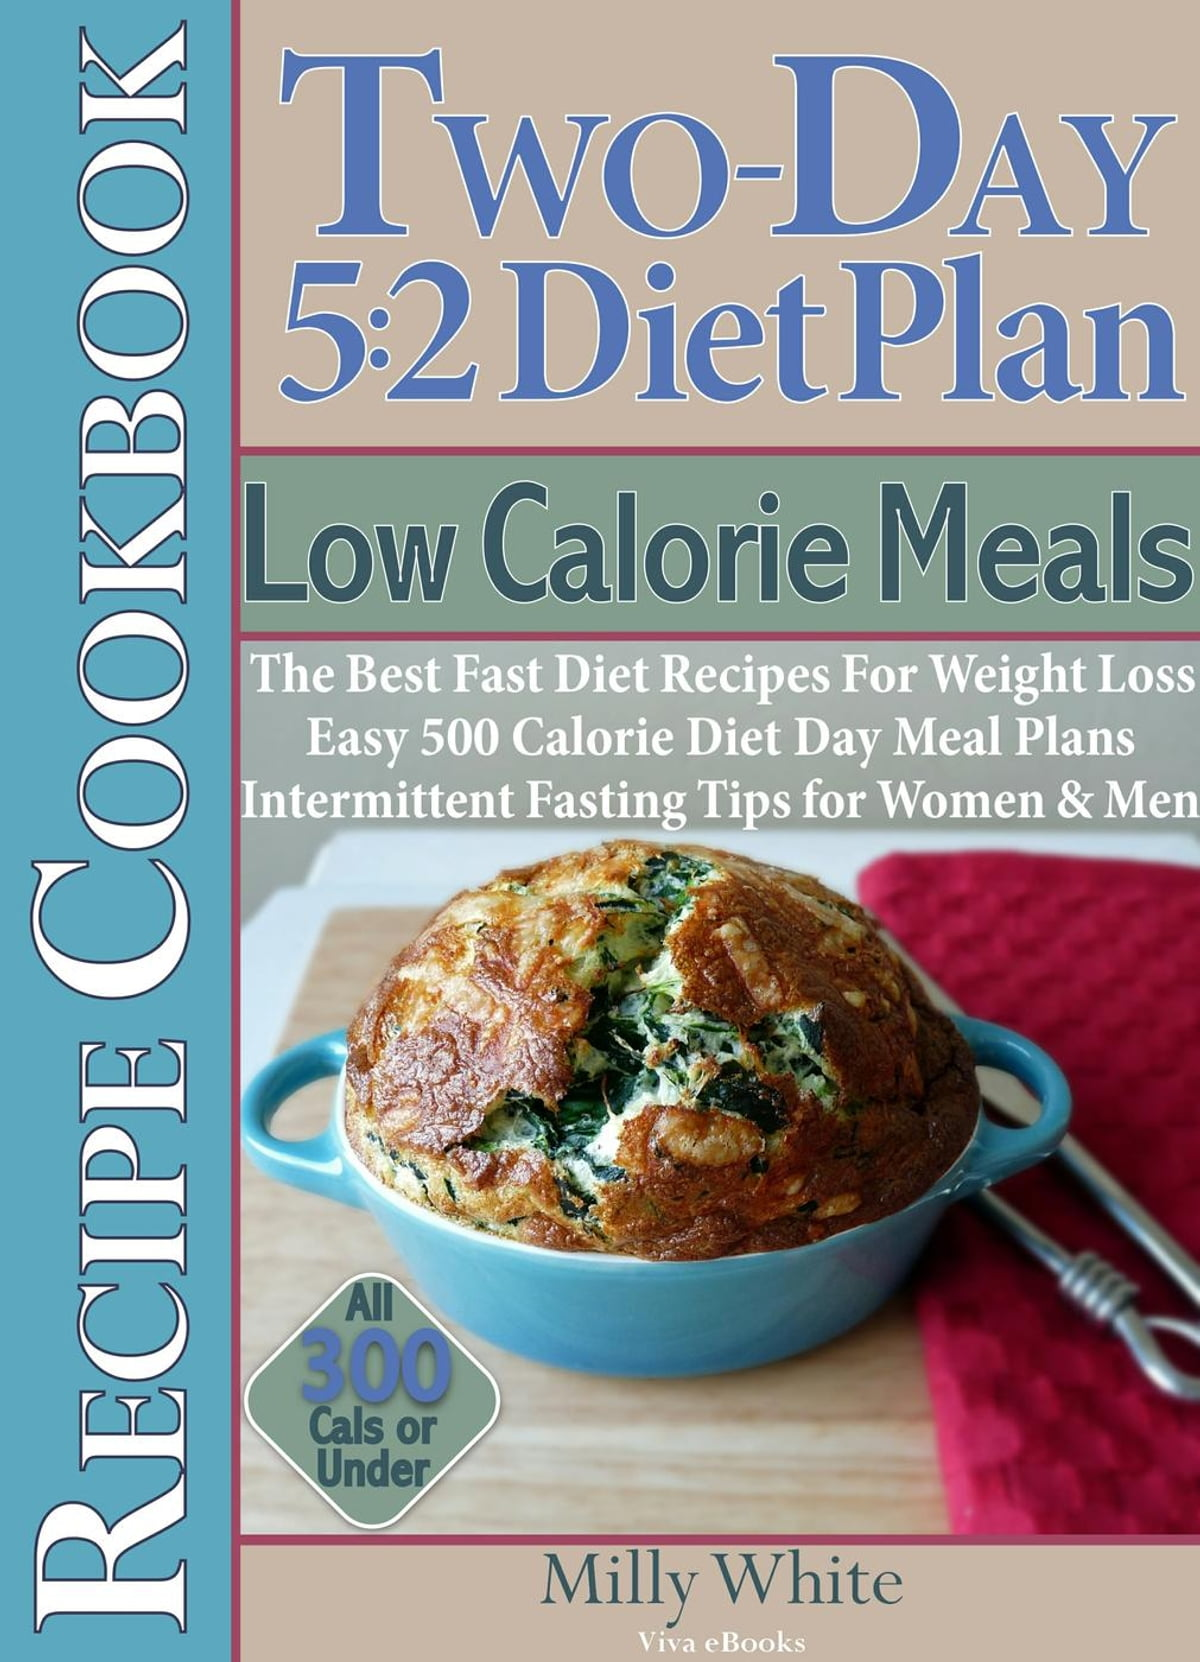 Two Day 5 2 Diet Plan Low Calorie Meals Recipe Cookbook The Best Fast Diet Recipes For Weight Loss Easy 500 Calorie Diet Day Meal Plans Ebook By Milly White 9781516351435 Rakuten Kobo Greece